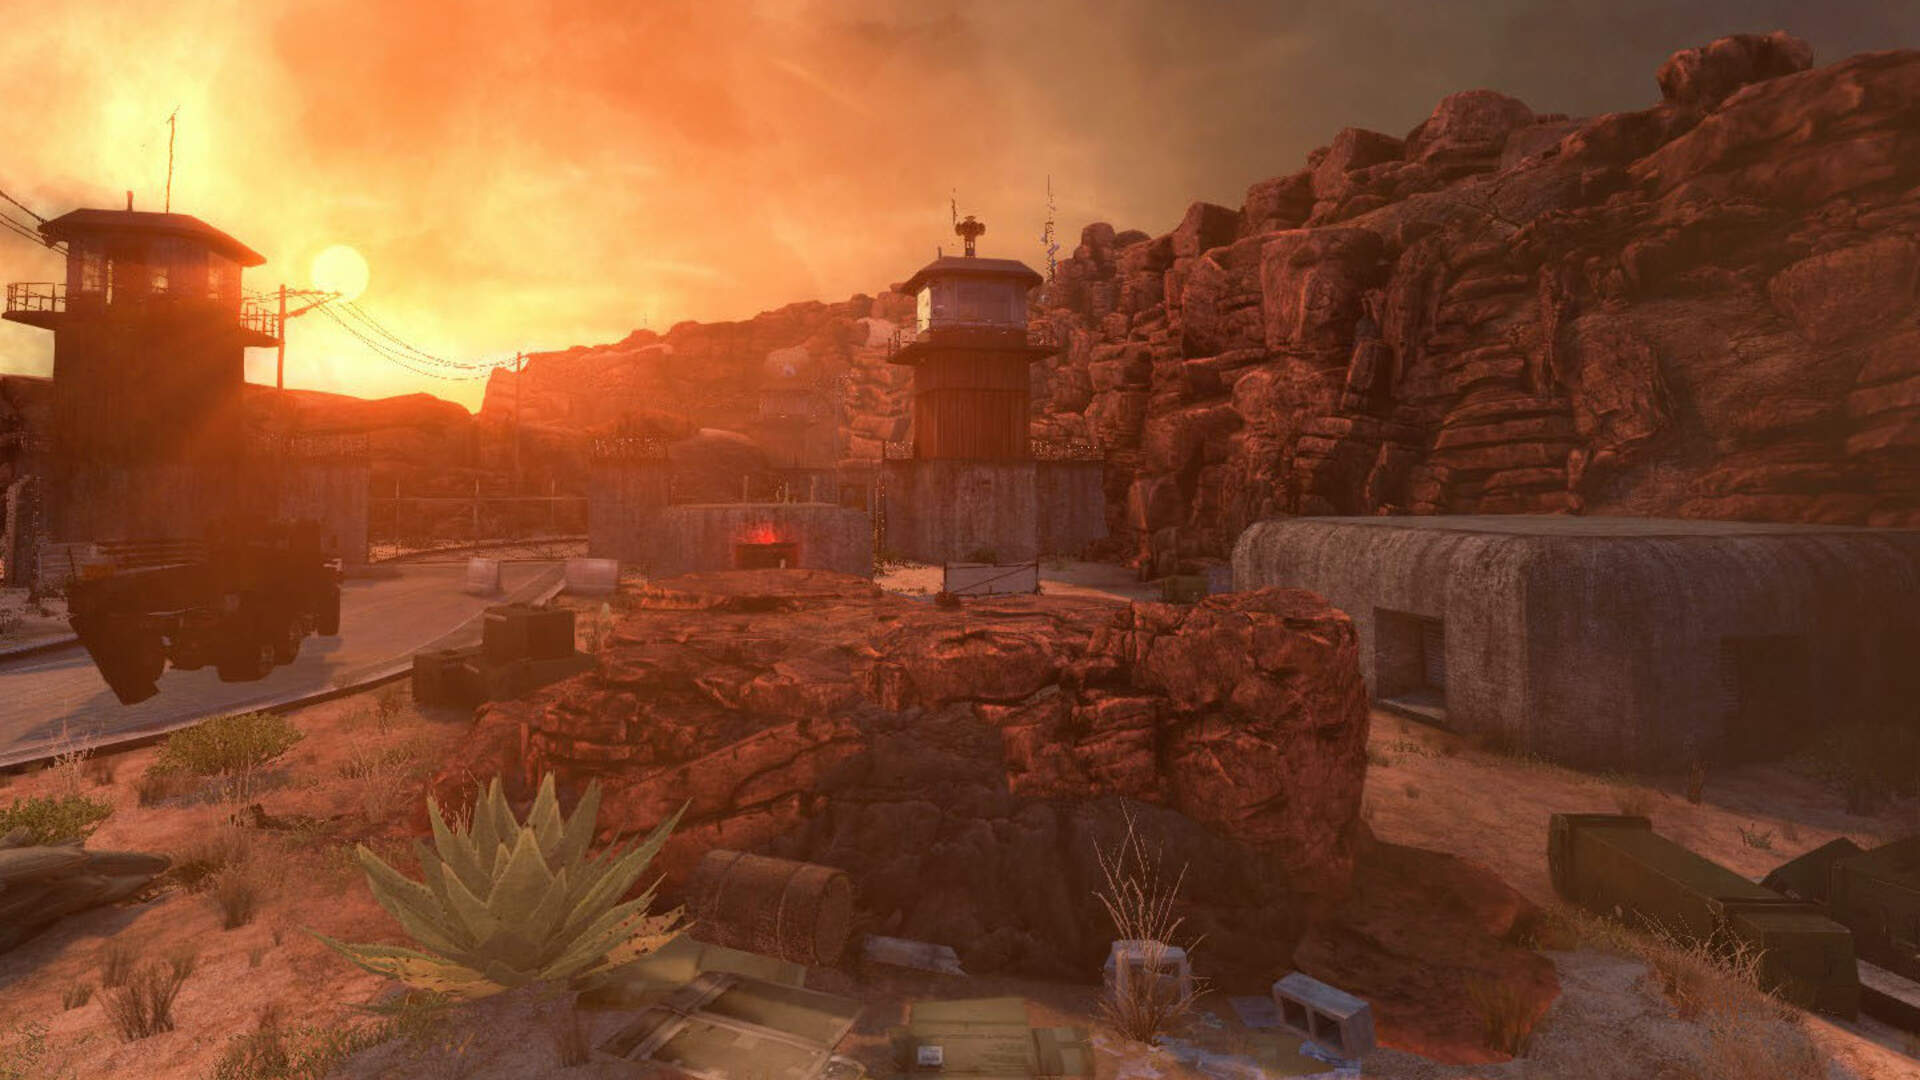 Half-Life Remake Black Mesa Now Has a Definitive Edition Out in Beta